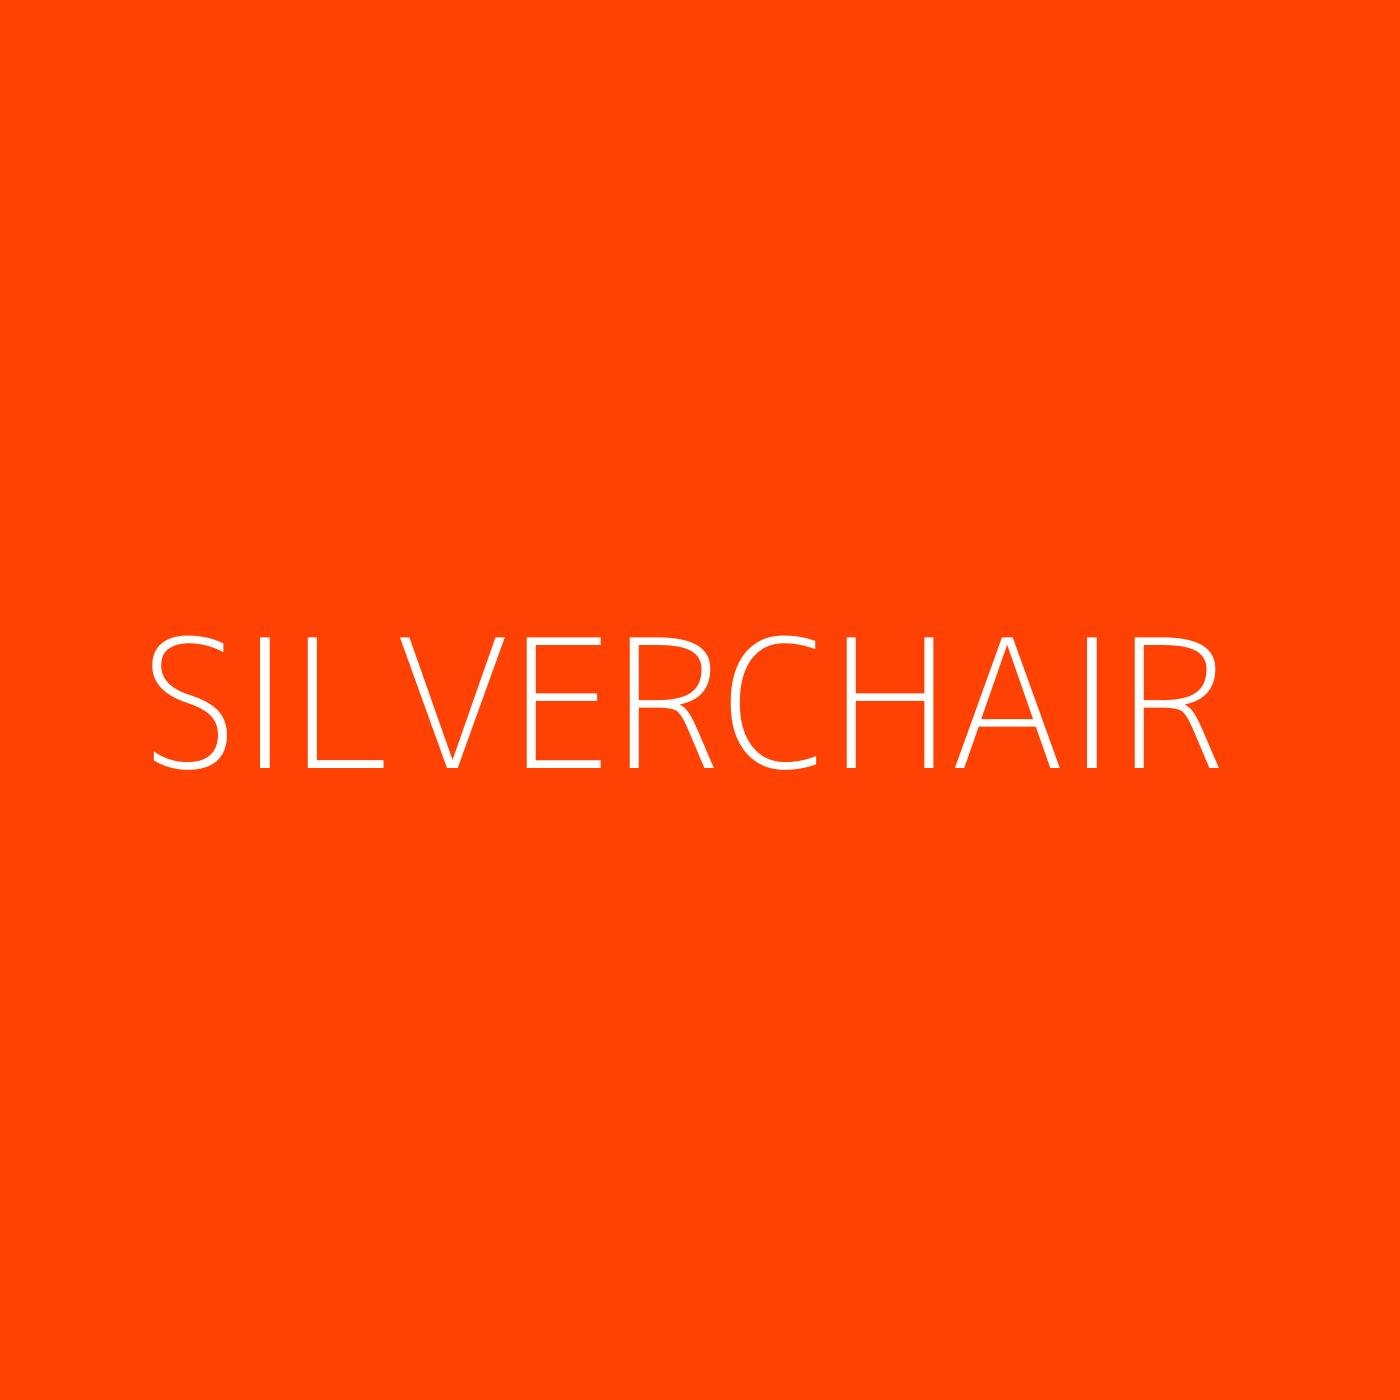 Silverchair Playlist Artwork